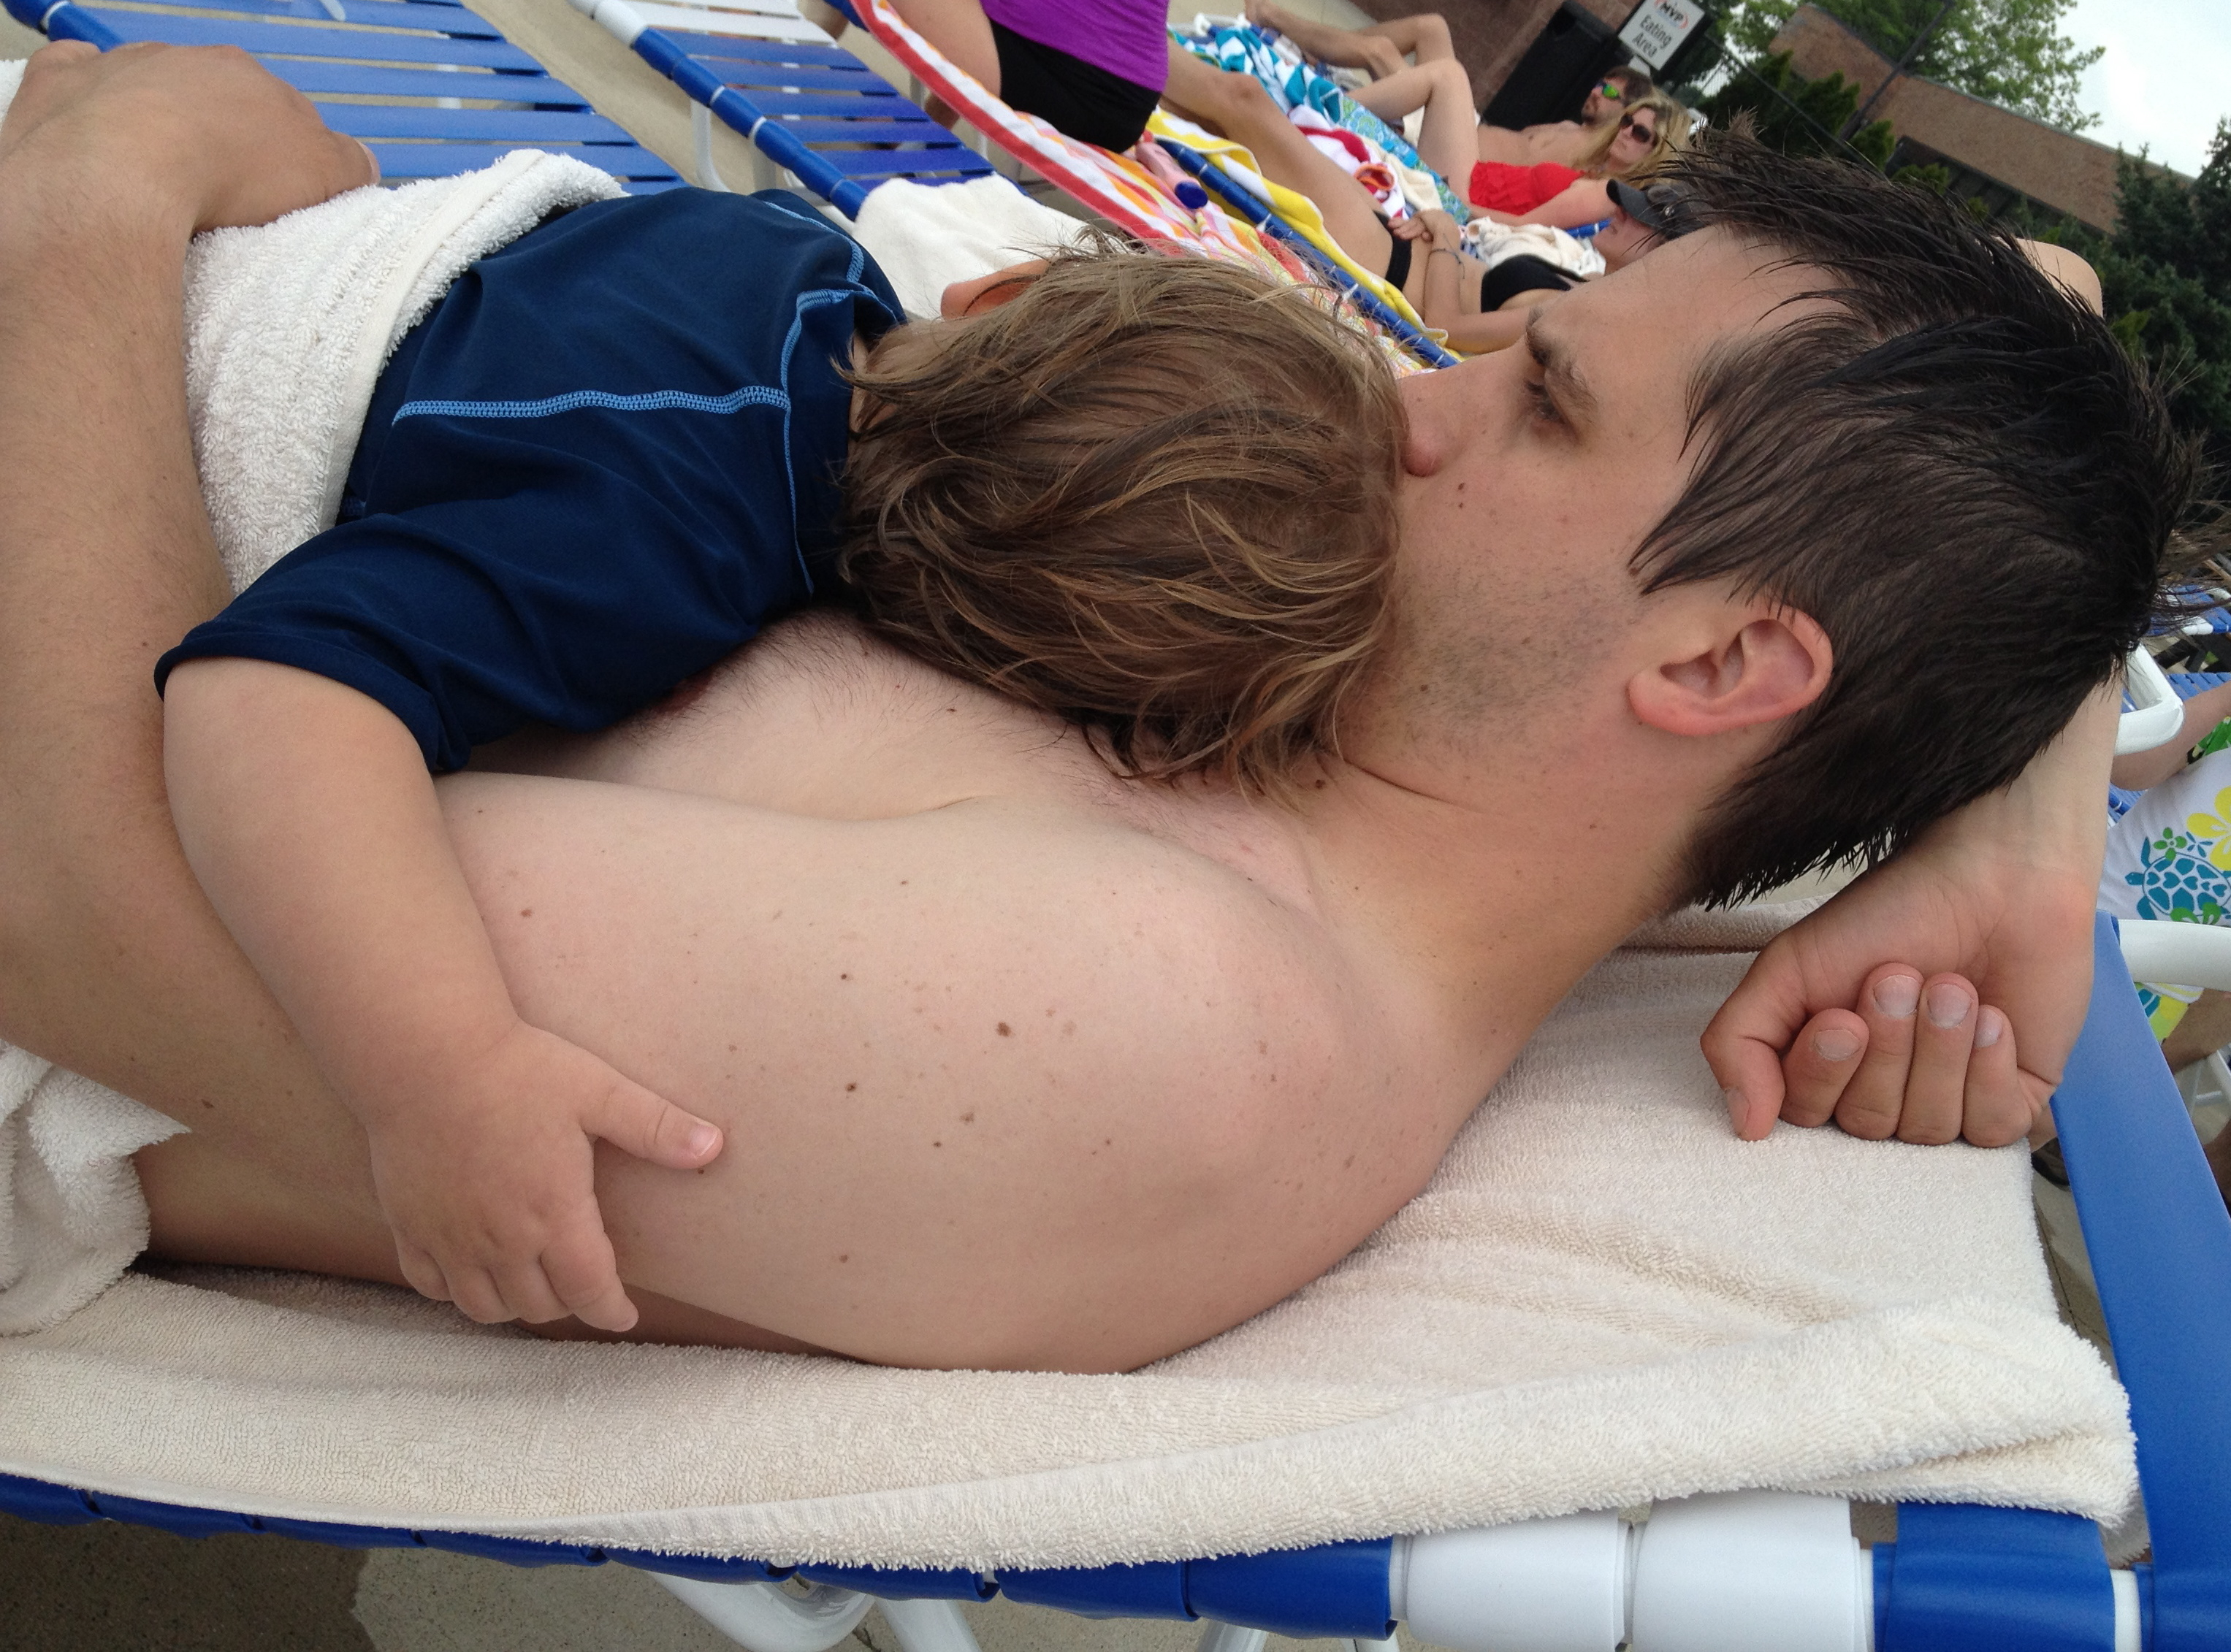 my view in between swim sessions at the pool this afternoon. i have a similar photo from when h was 3 months old. l.o.v.e.